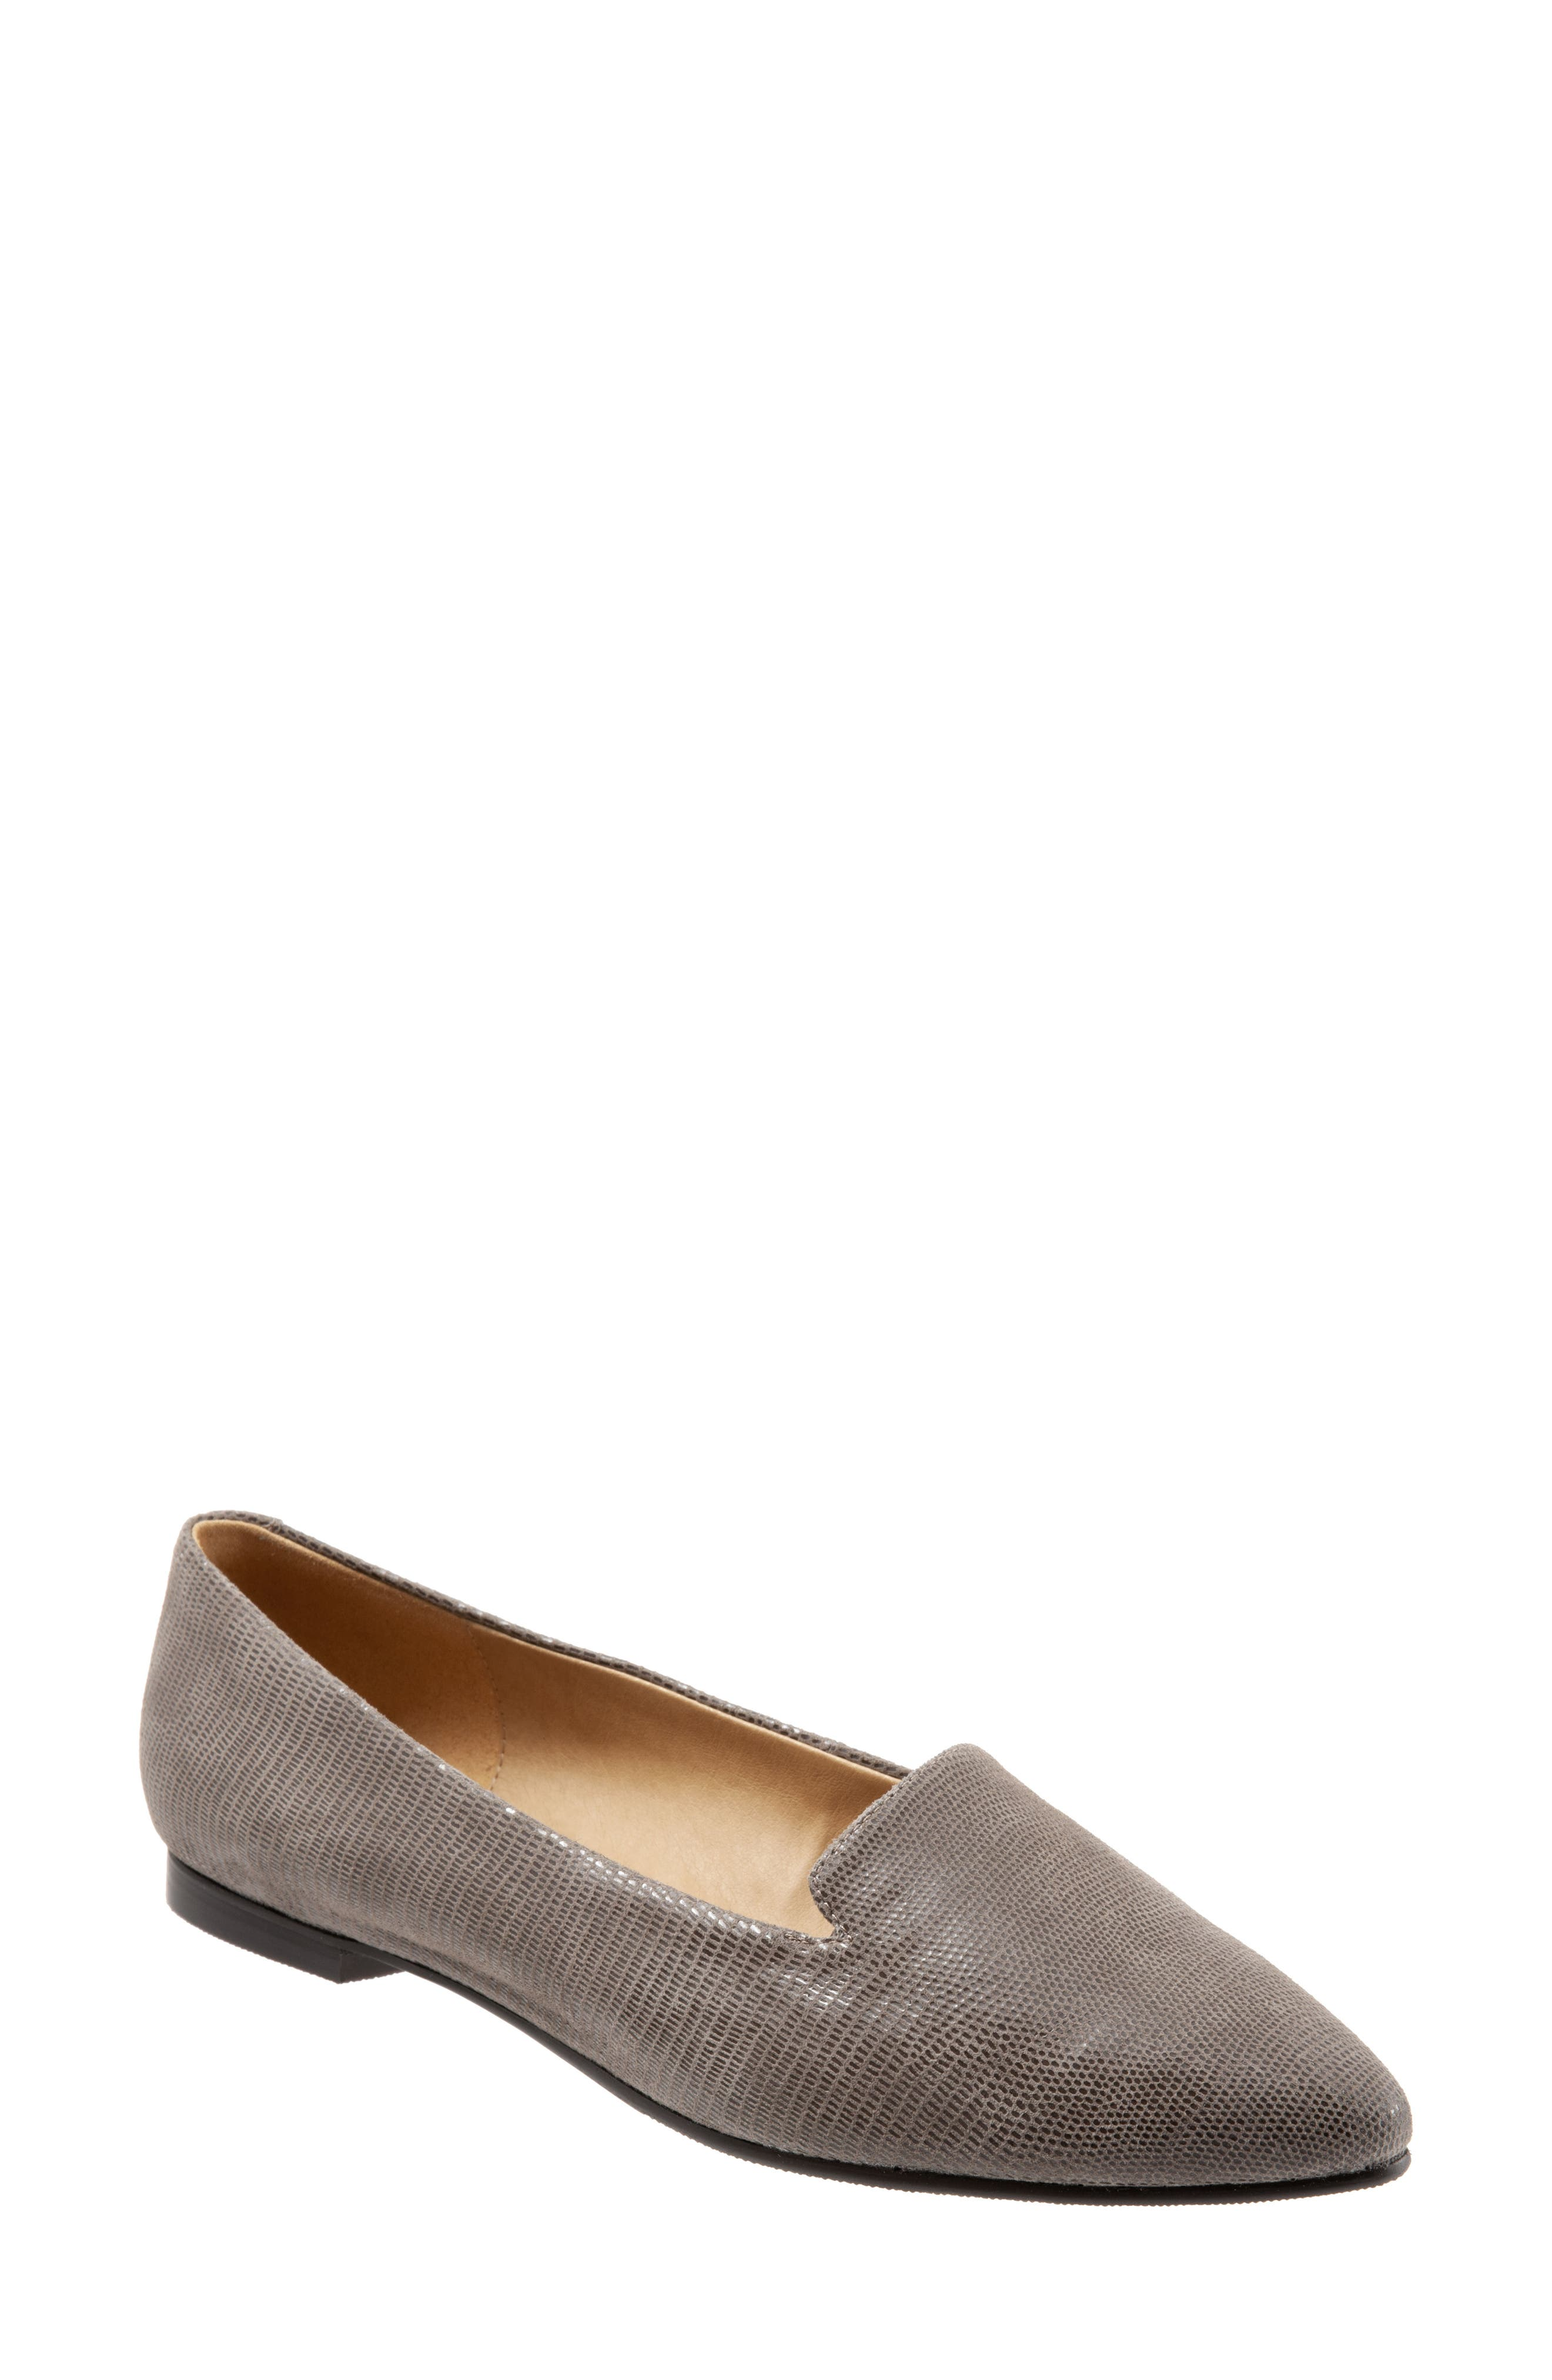 Trotters Harlowe Pointy Toe Loafer, Brown